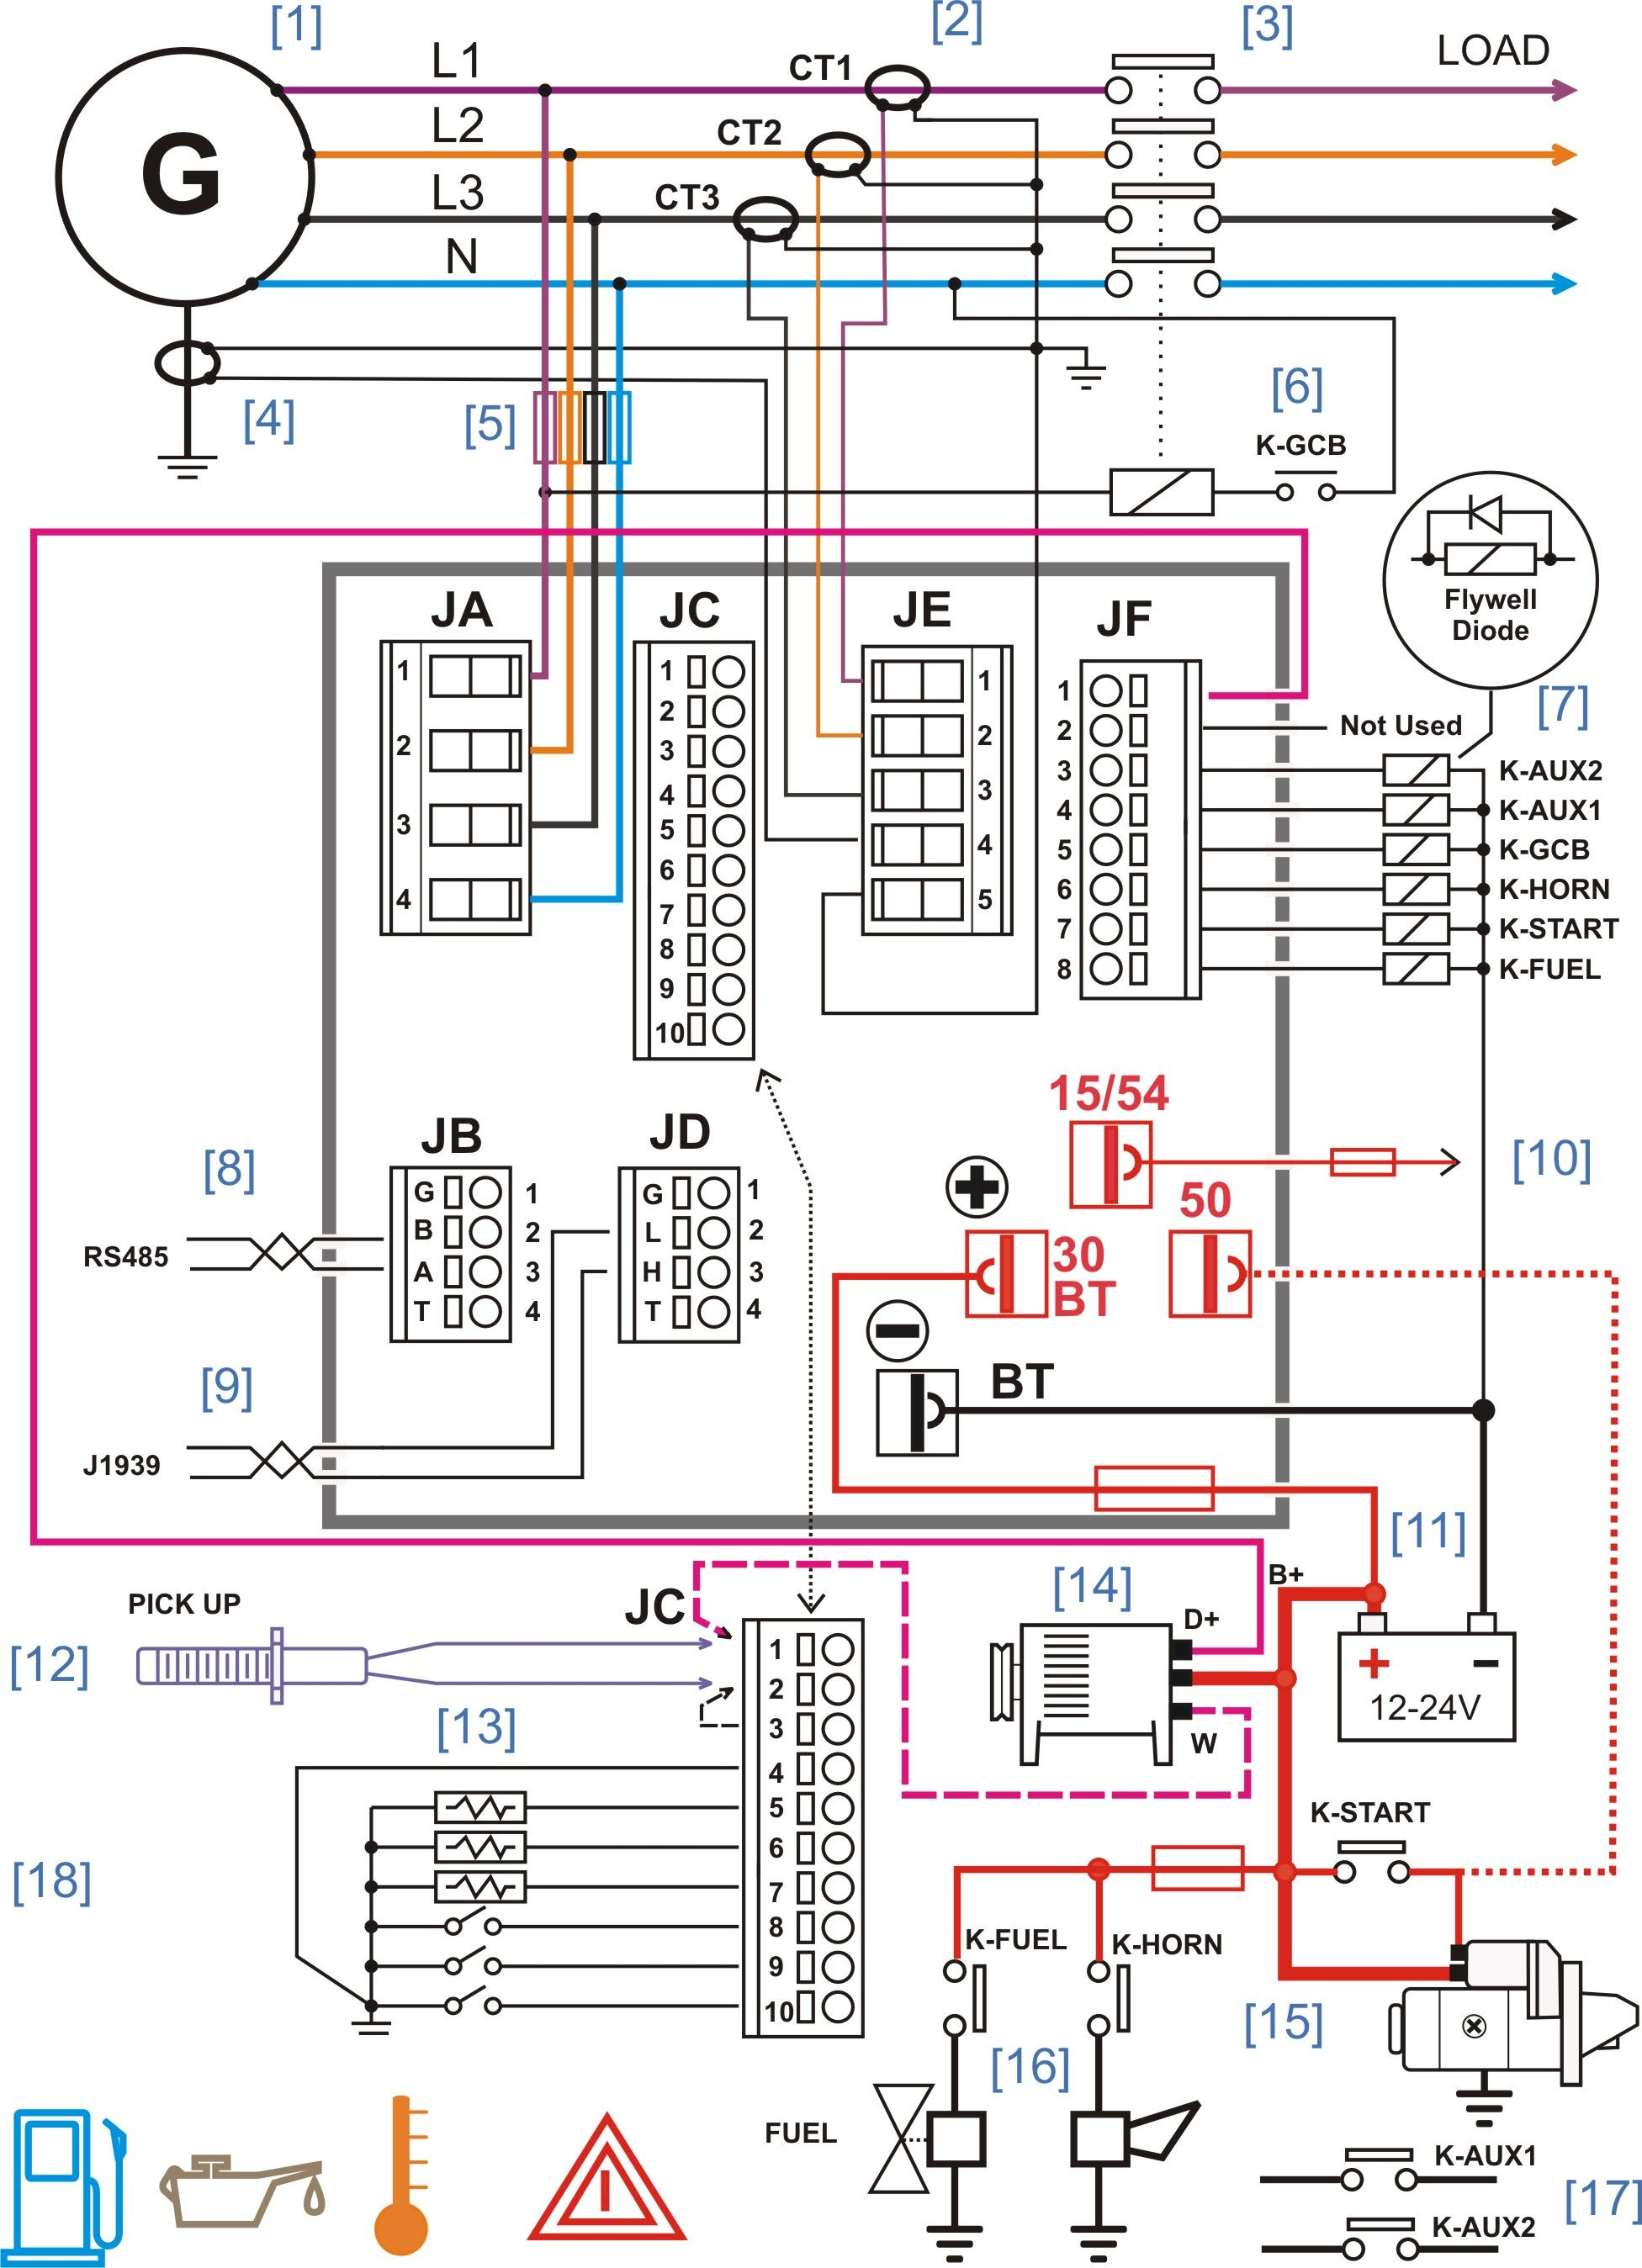 Honda Gx390 Electrical Schematic Wiring Diagrams Gx340 Diagram Generator Explained Engine On Off Switch Diesel Control